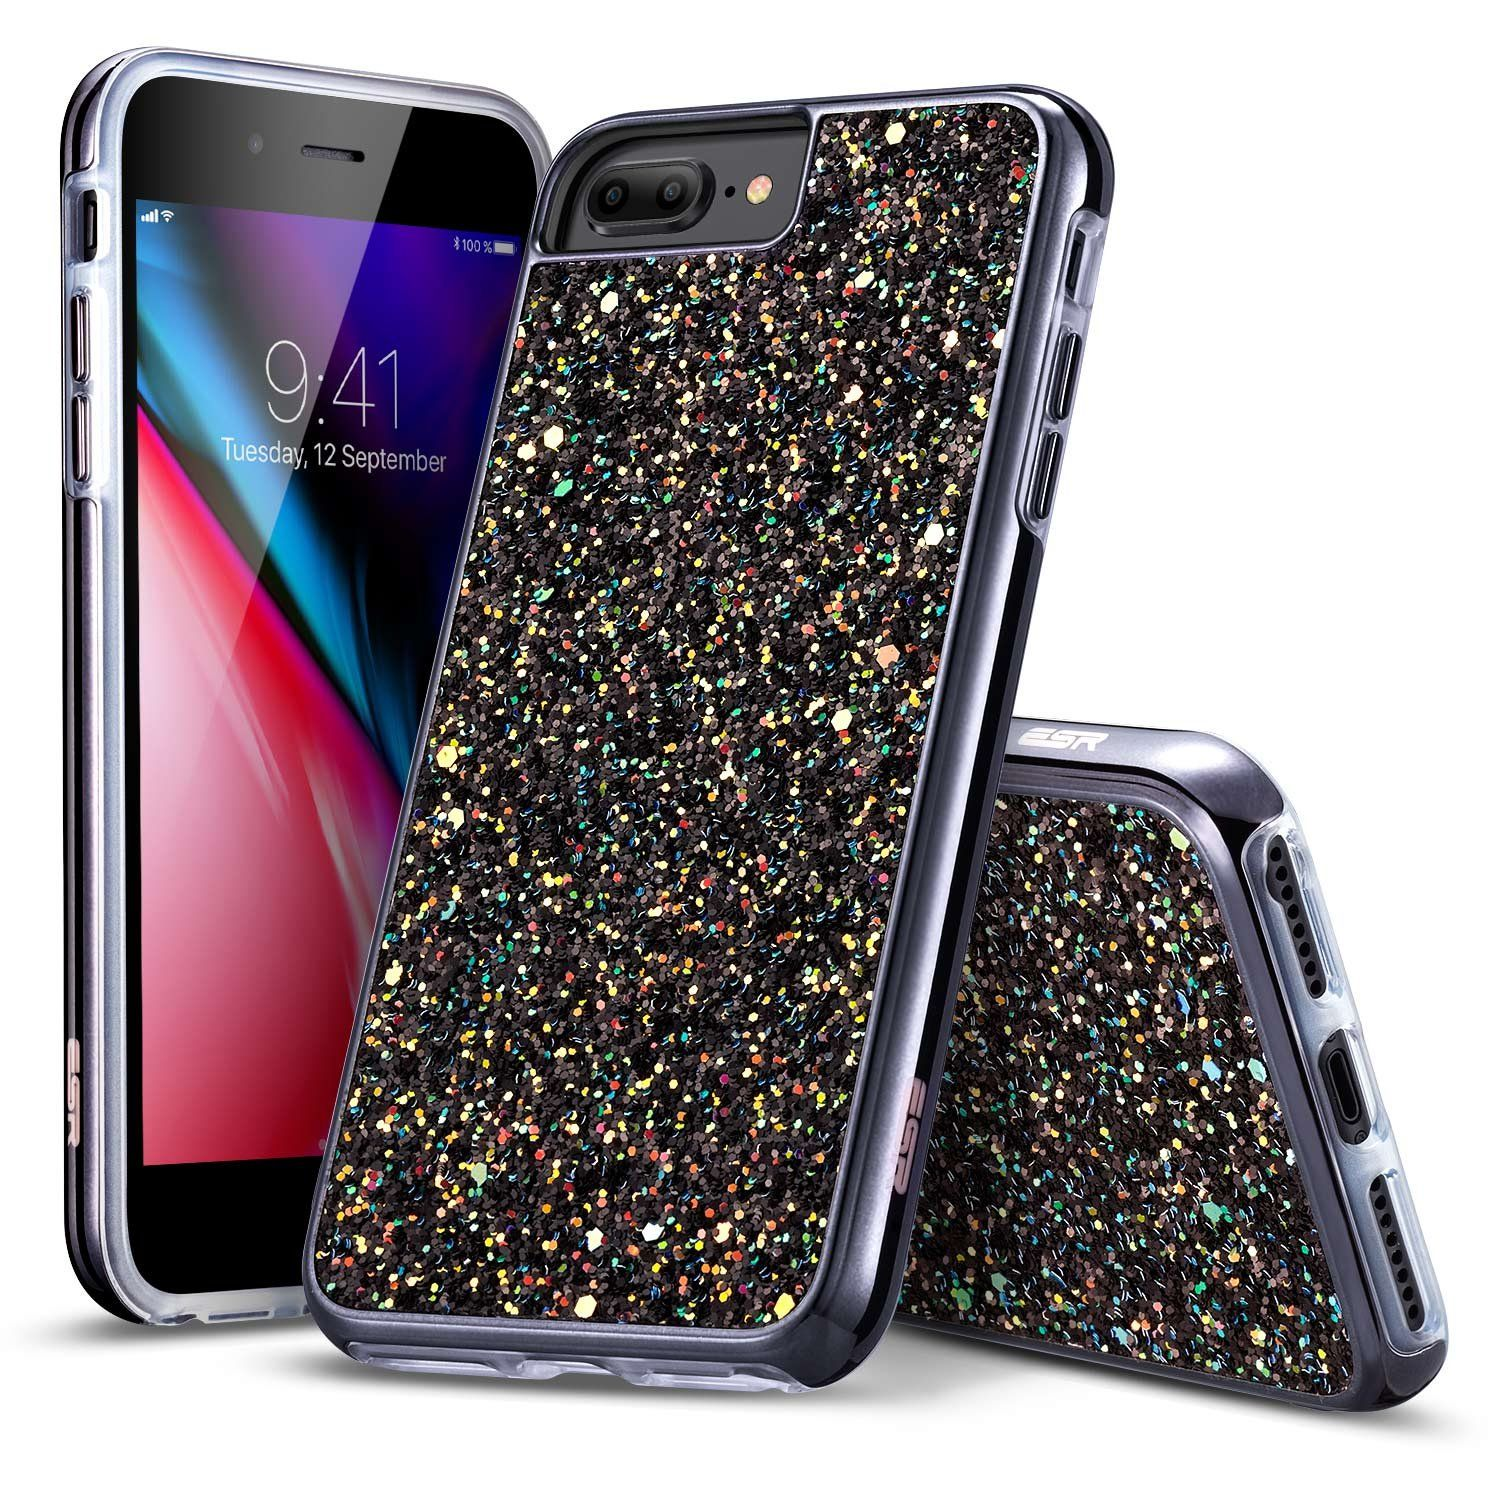 d8c8cf689ccb54 iPhone 8 Plus Case iPhone 7 Plus Case ESR Glitter Bling Hard Cover with  Dual Layer Structure [Hard PC Back Outer Soft TPU Inner] for Apple 5.5  iPhone 8 ...